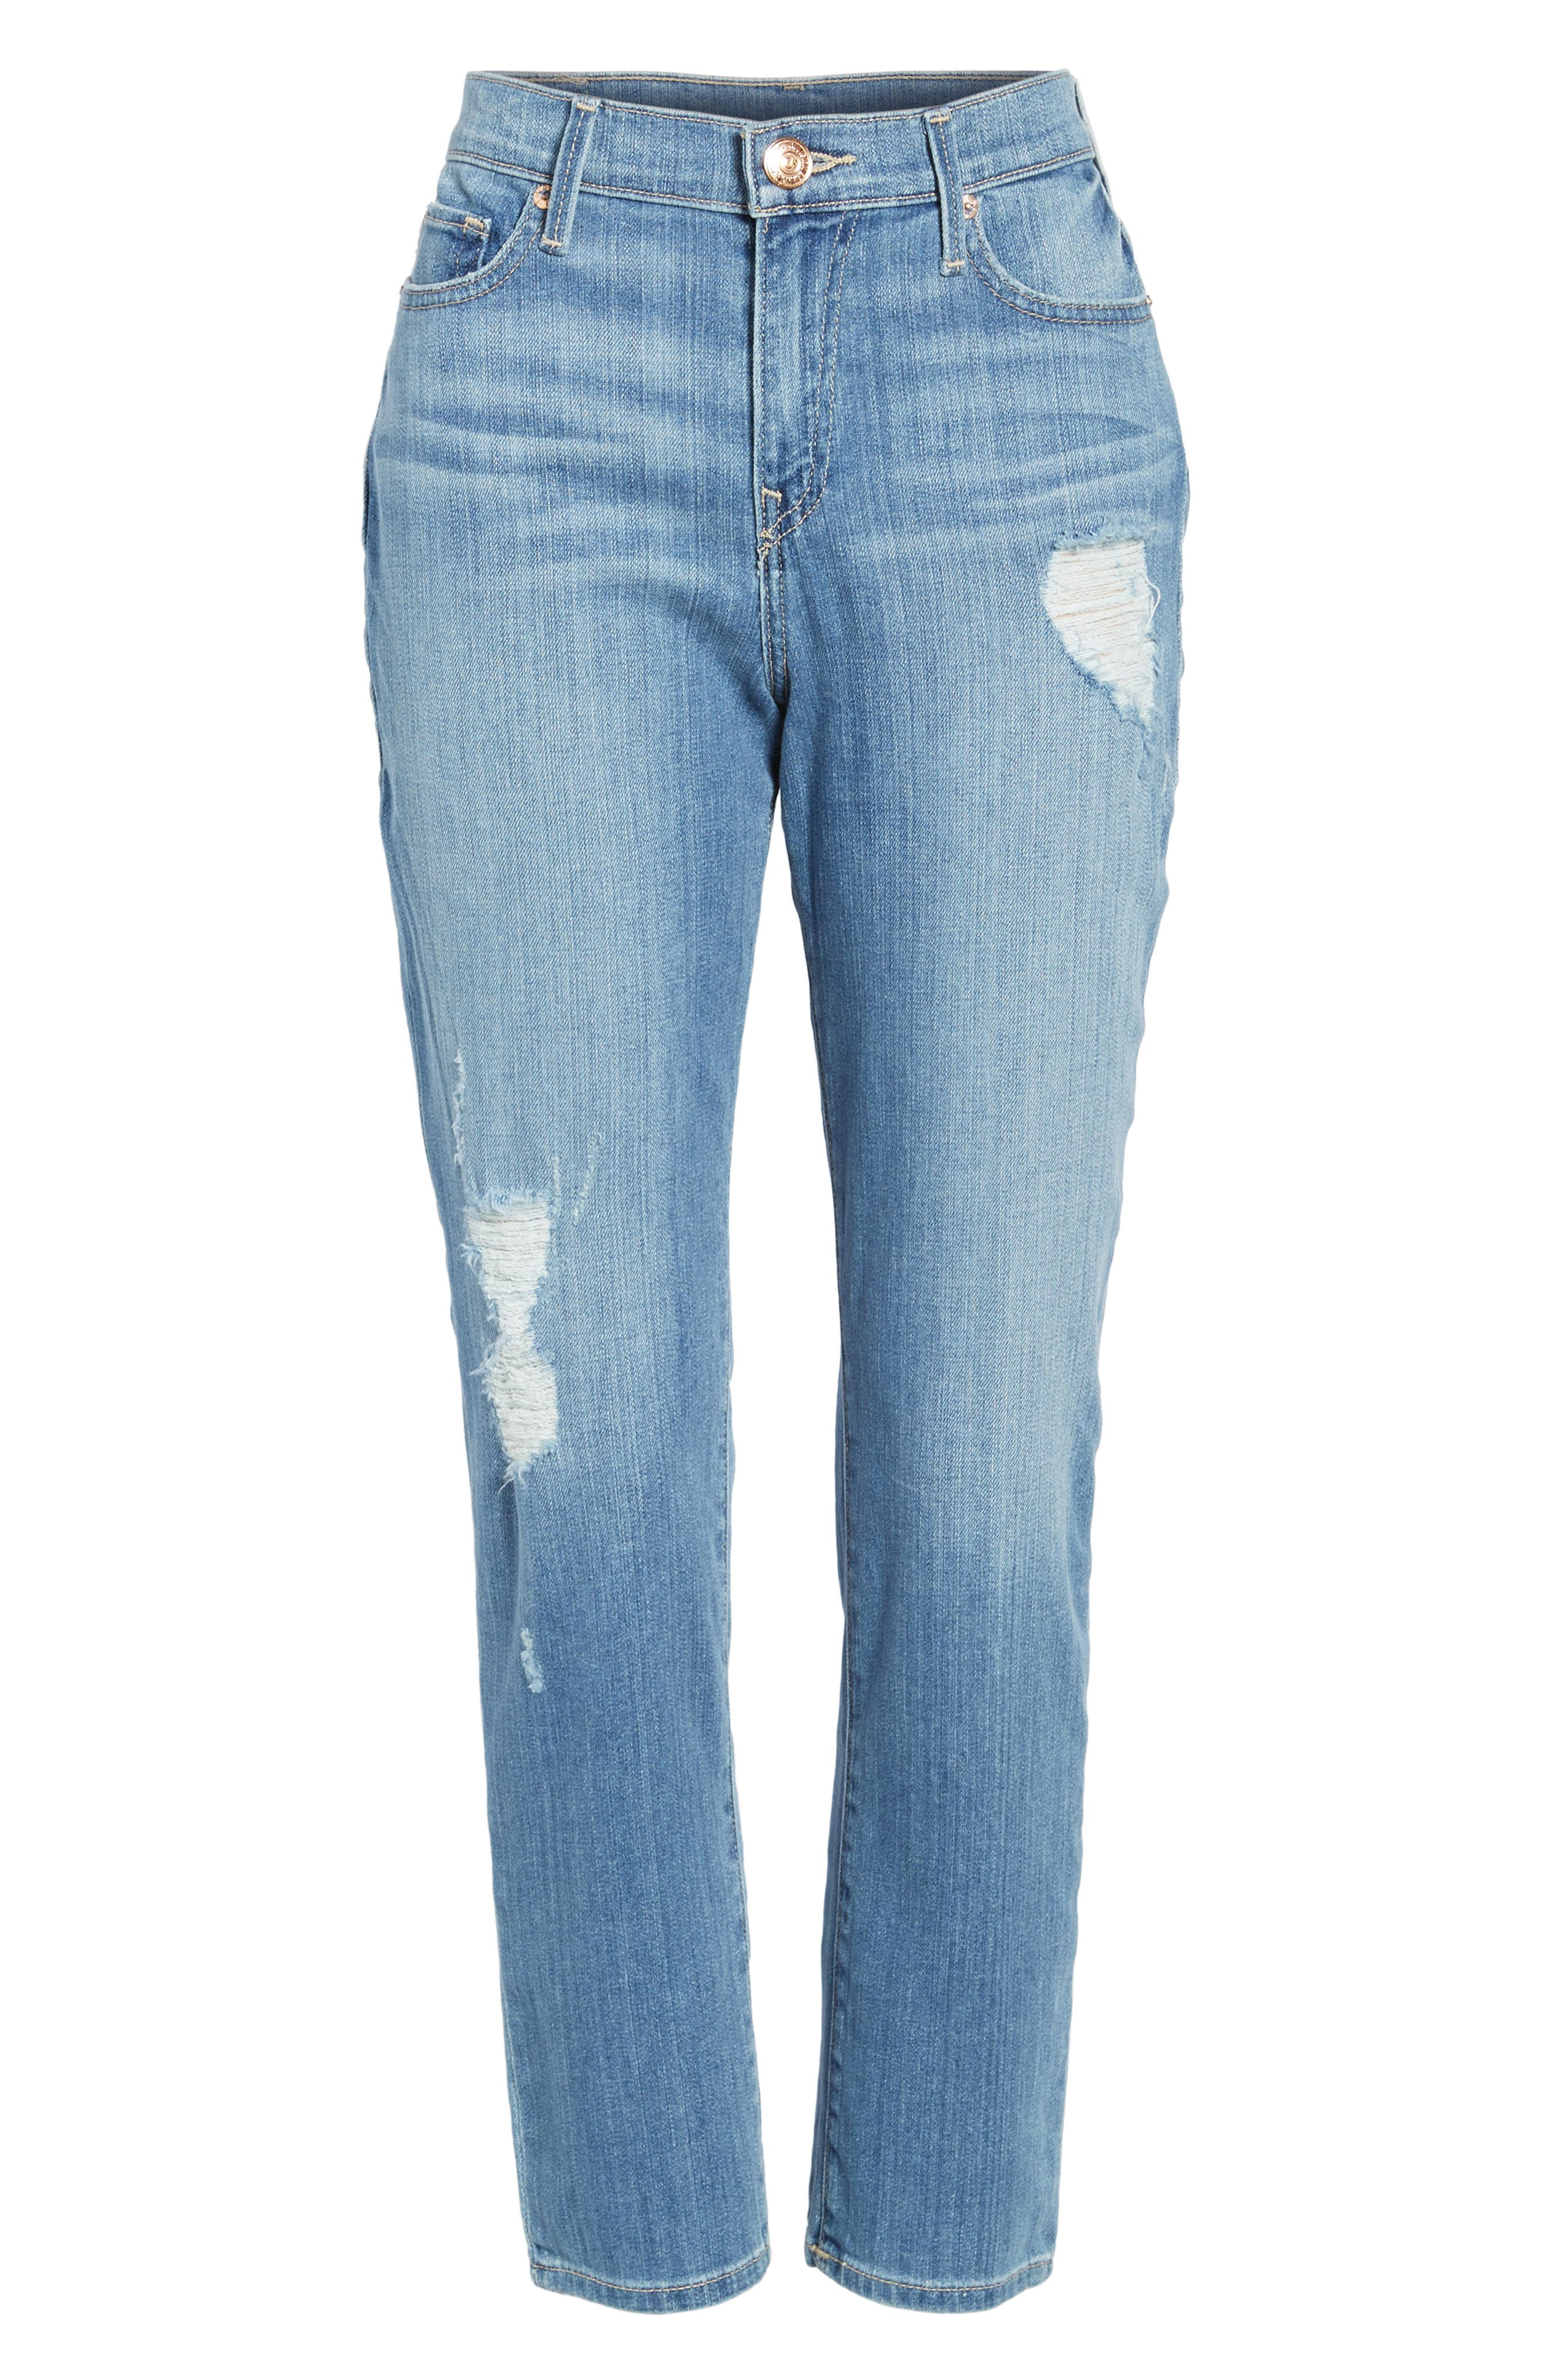 Colette High Waist Tapered Skinny Jeans,                         Main,                         color, Waterfall Ridge